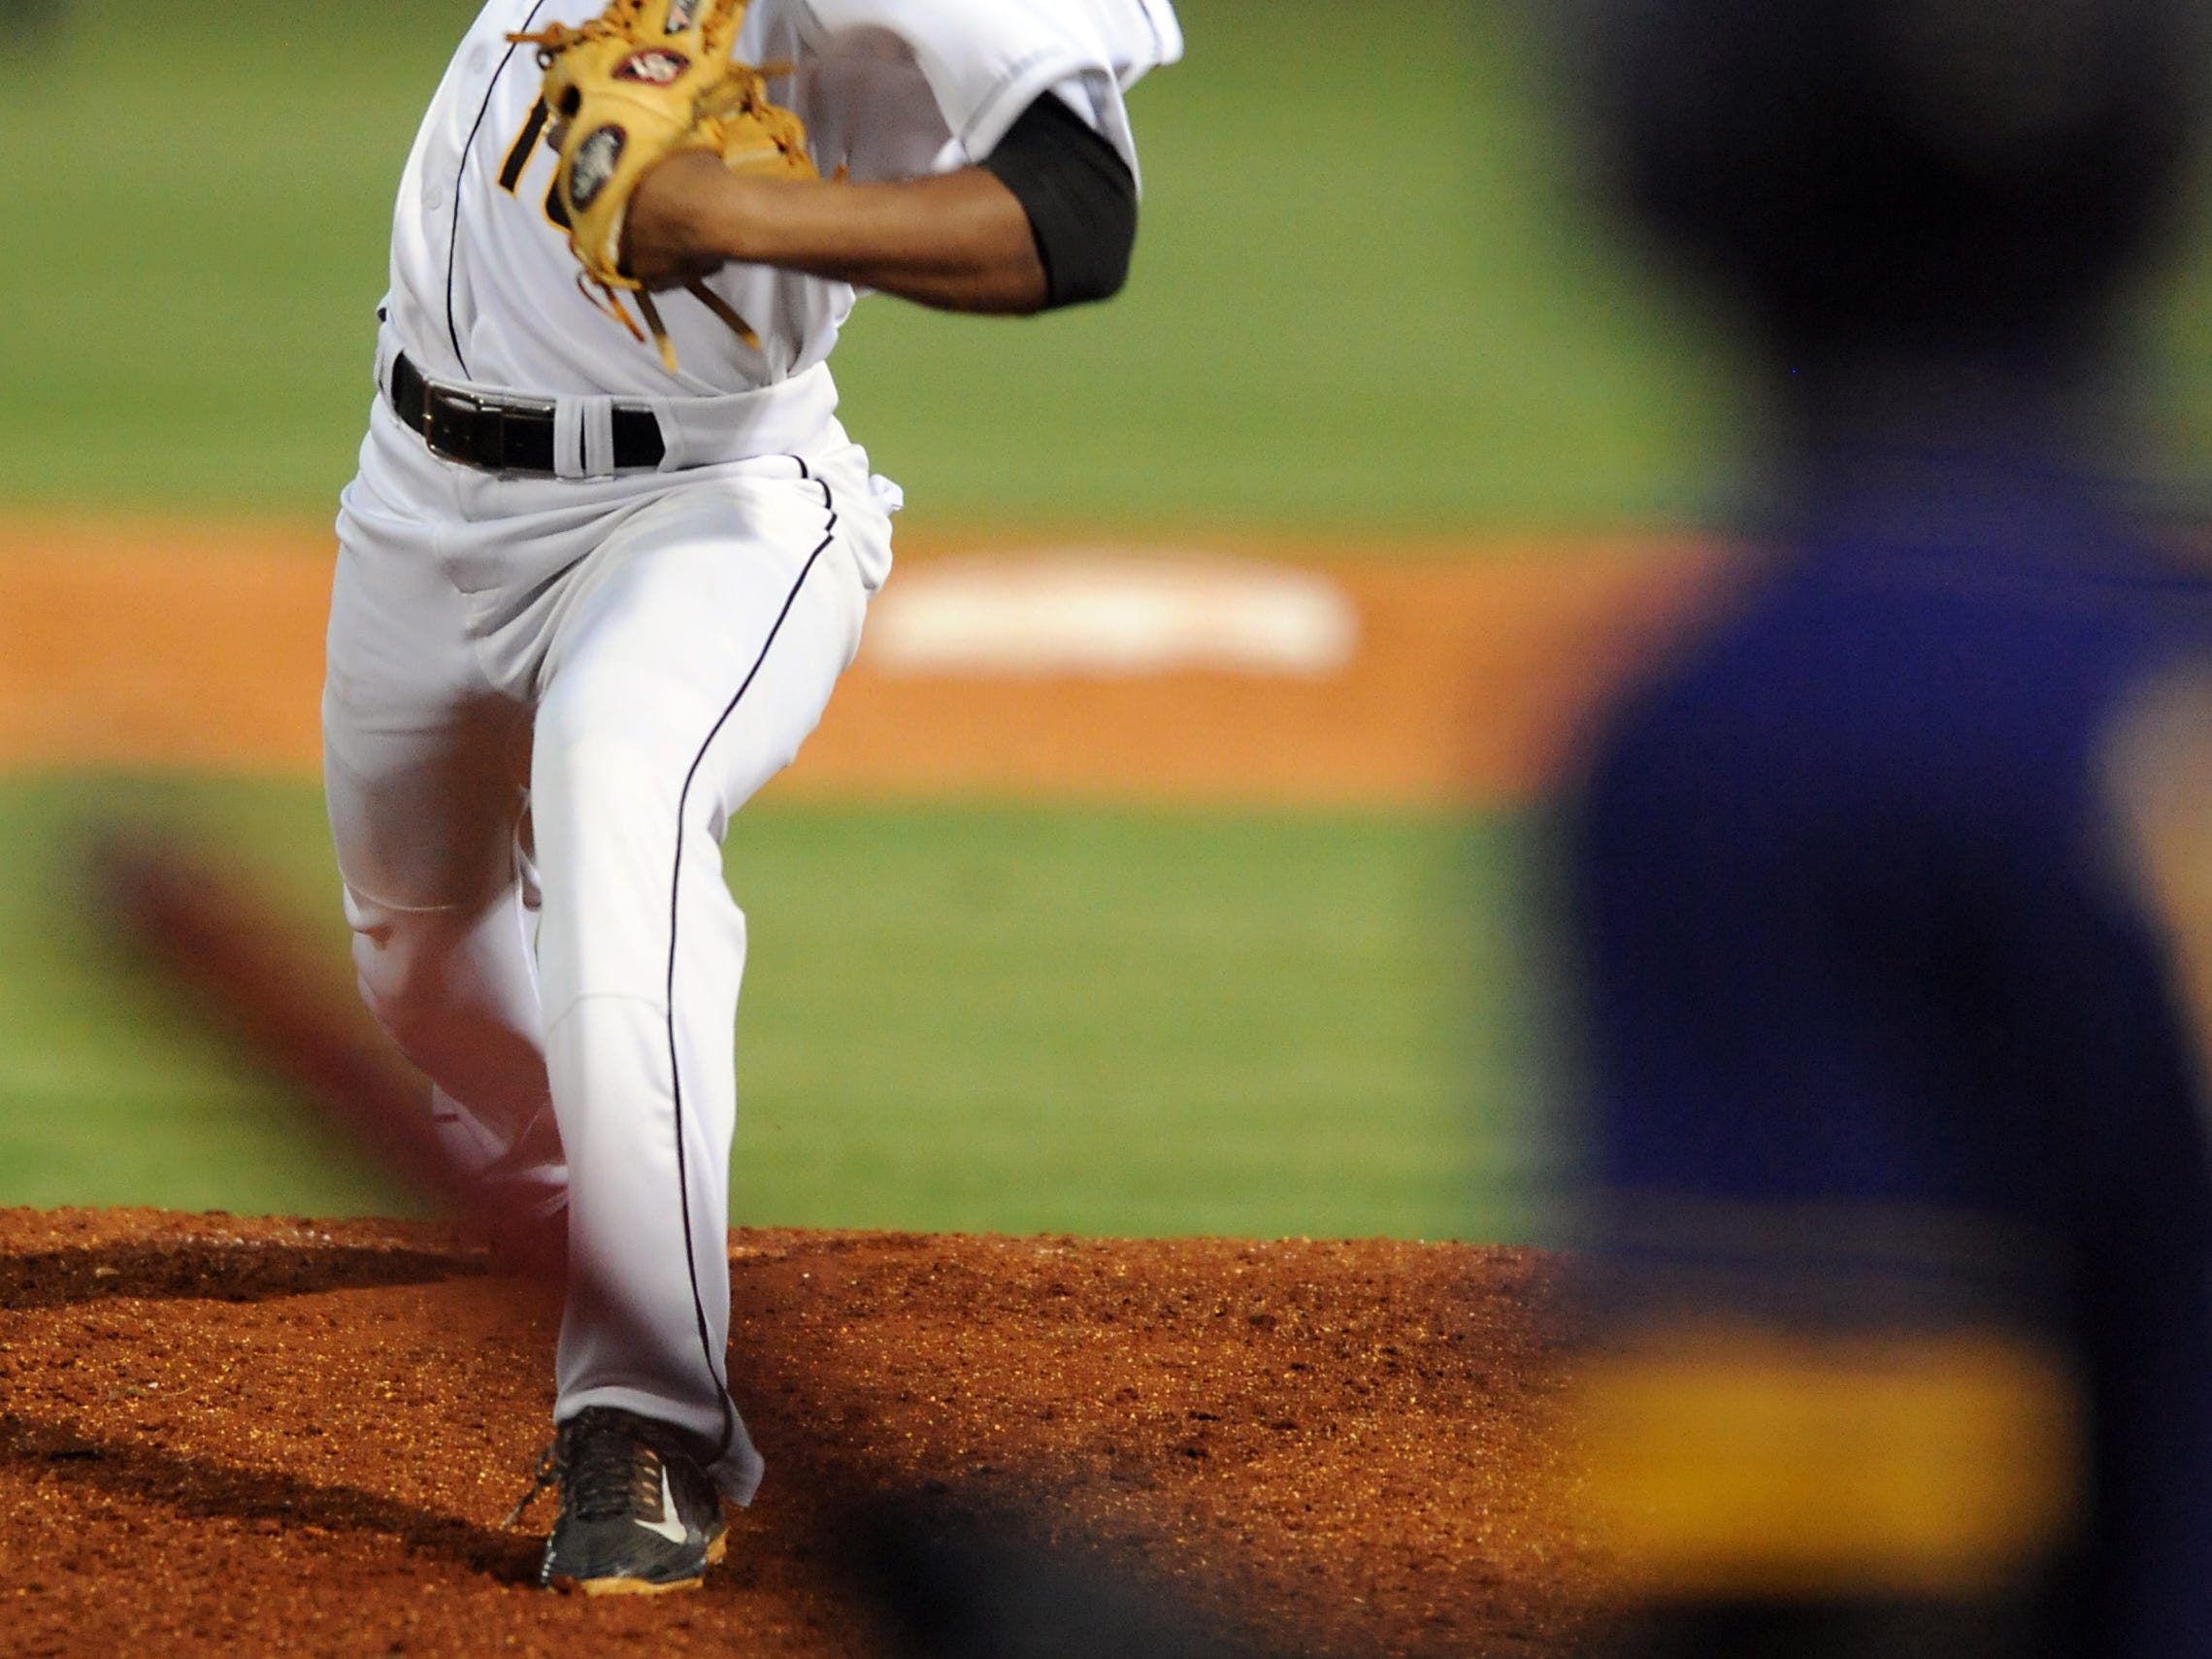 Oak Grove pitcher J.C. Keys delivers a pitch Tuesday during the Warriors' game against Hattiesburg at Oak Grove High School.